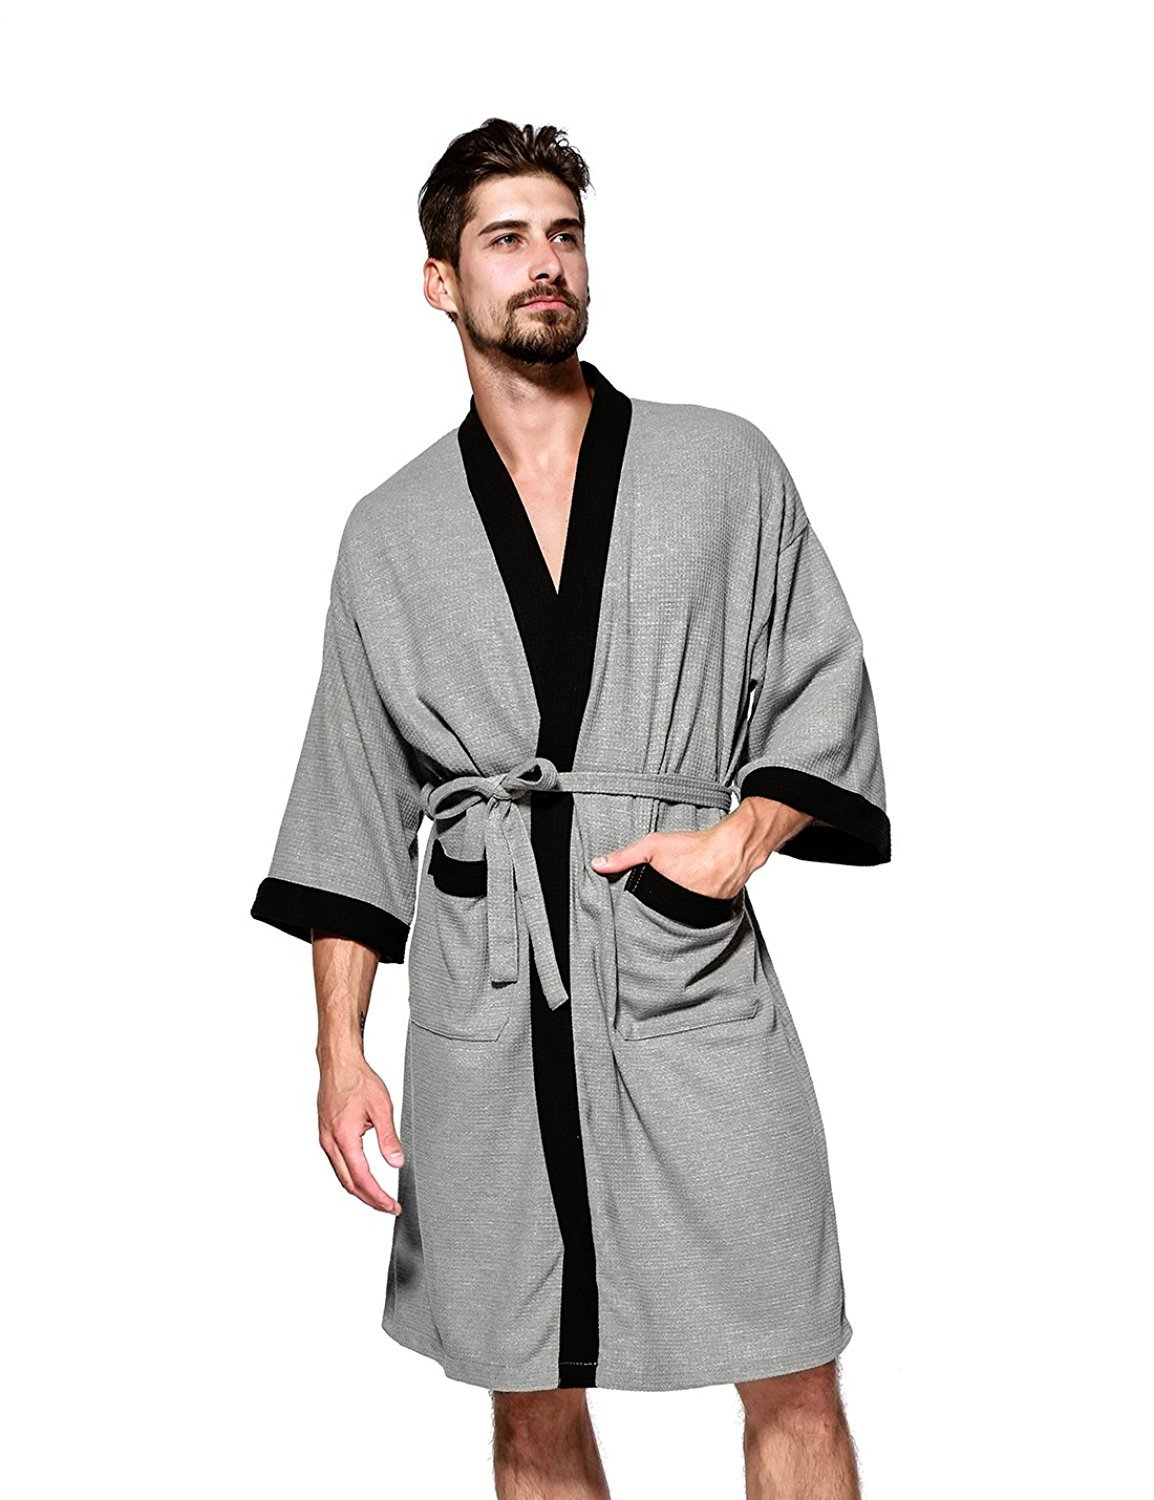 Jearey Men's Kimono Robe Cotton Waffle Spa Bathrobe Lightweight Soft Knee Length Sleepwear with Pockets(Grey-Black, XL) by Jearey